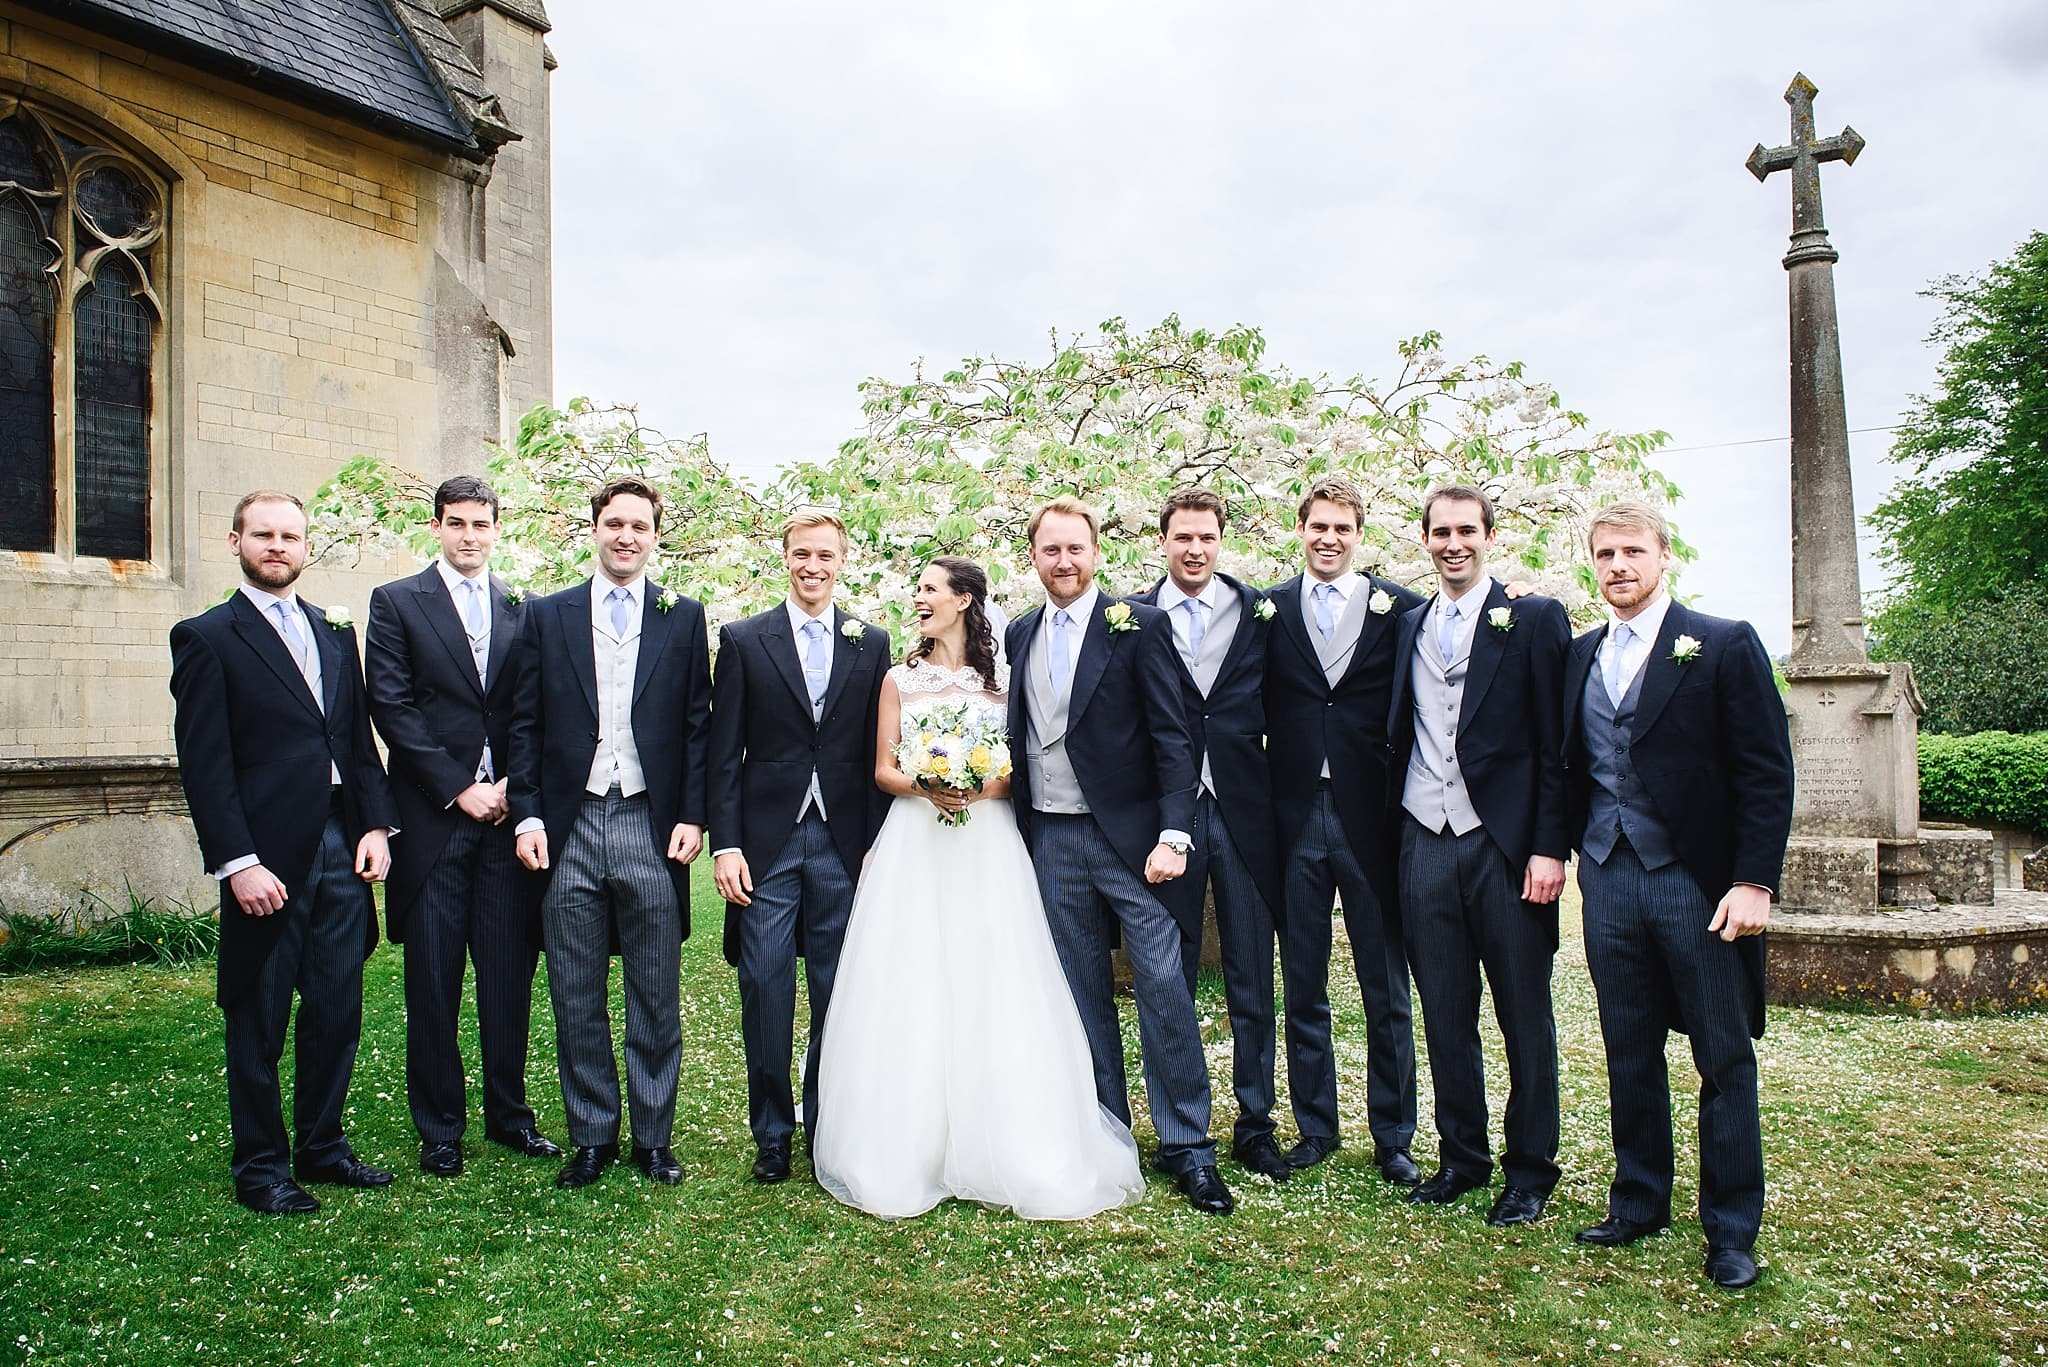 Groomsmen pose with bride outside St Swithins church, Bathford